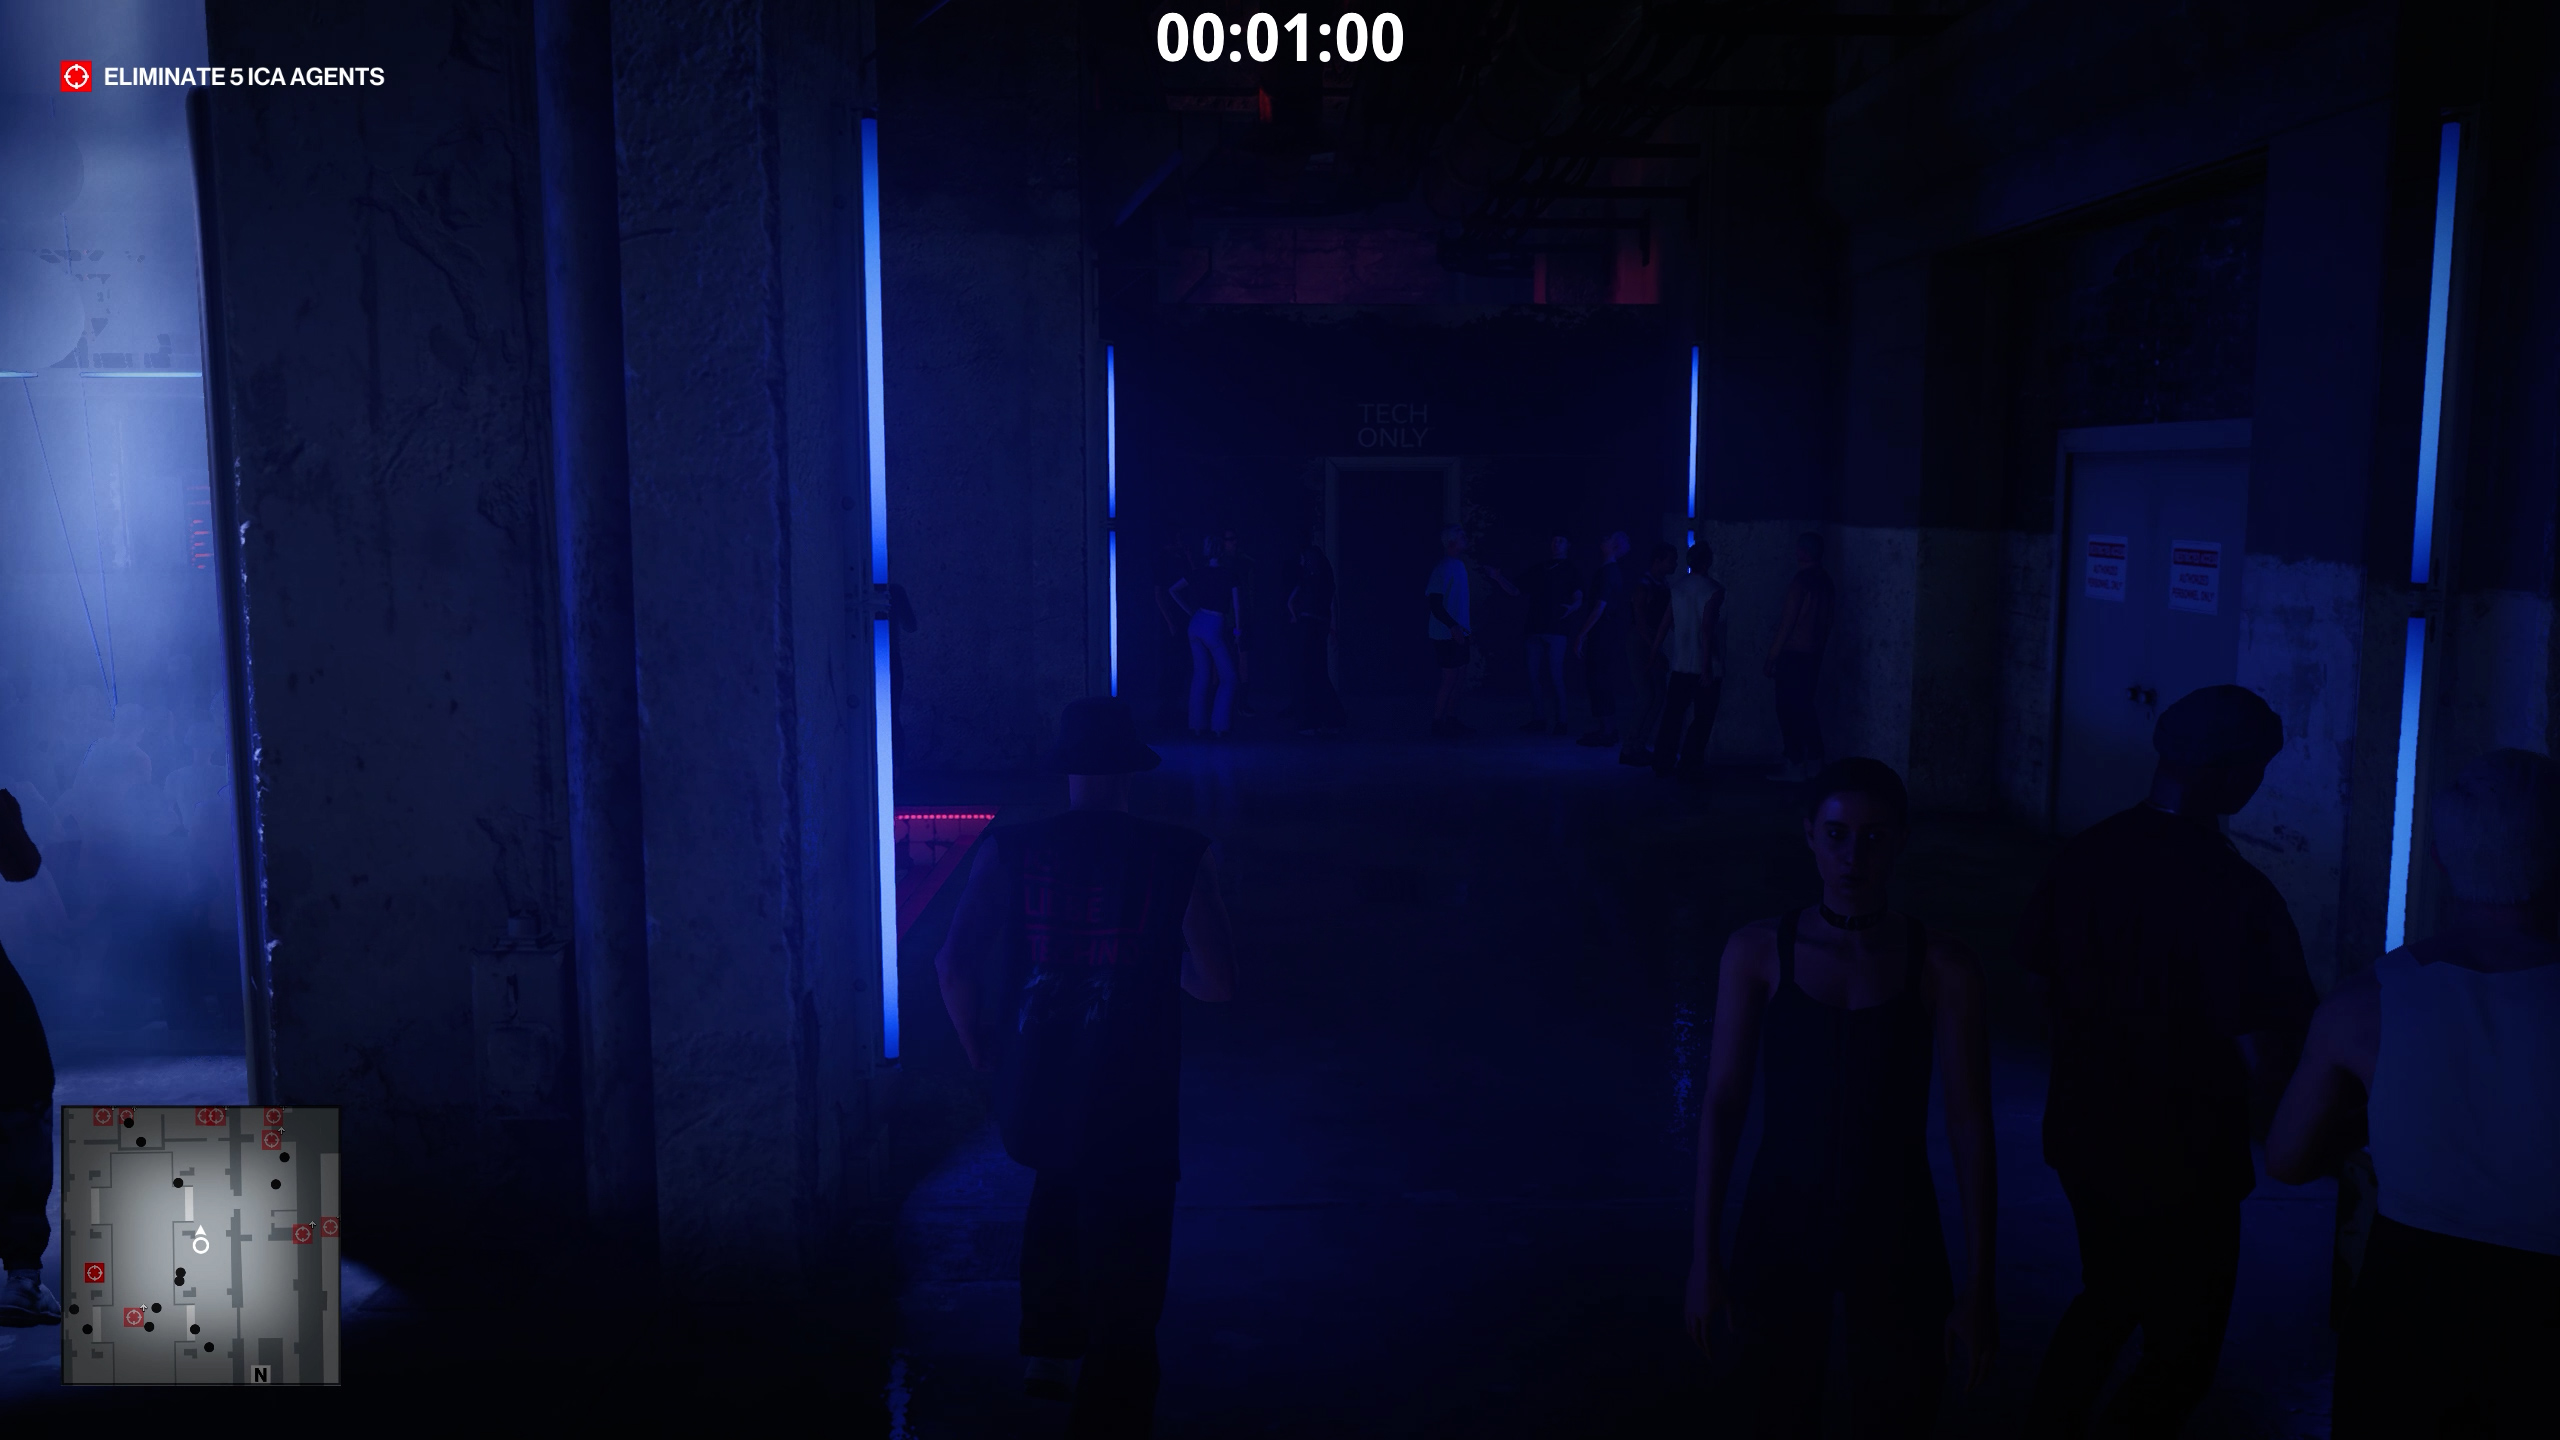 hitman 3 - there was a fire fight - backstage entrance